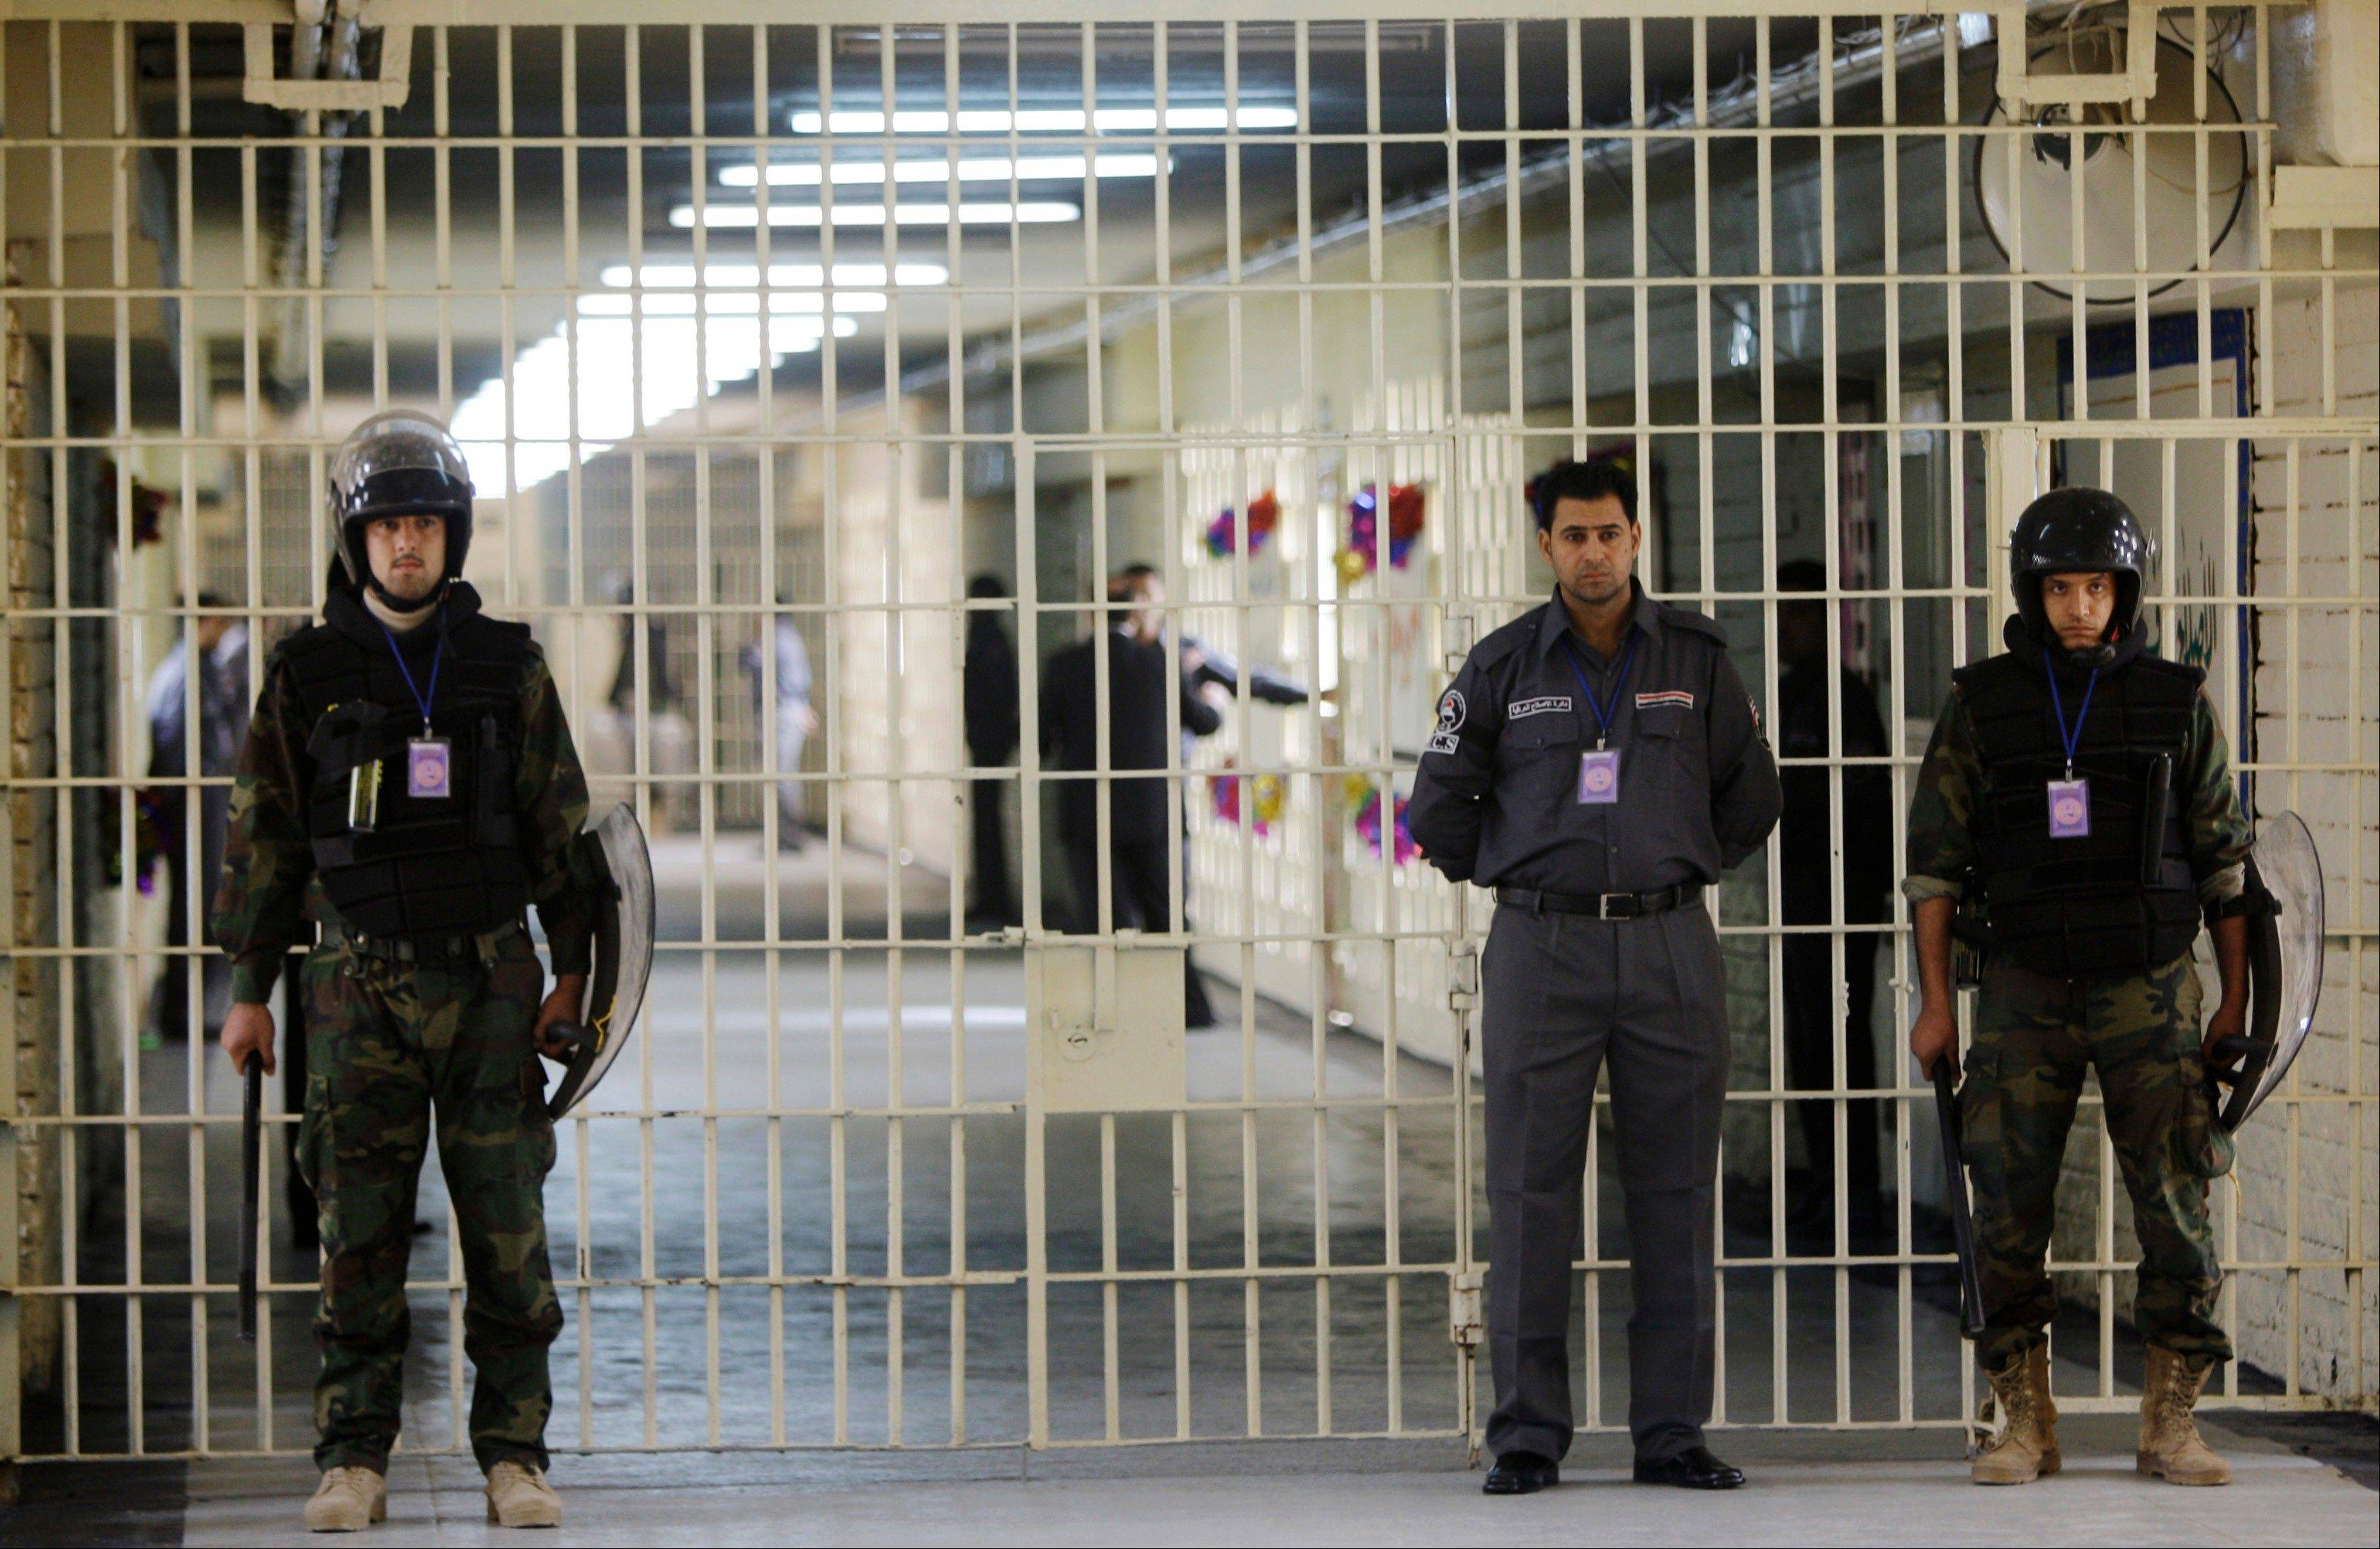 In this Feb. 21, 2009 file photo, guards stand at a cell block at the renovated Abu Ghraib prison, now renamed Baghdad Central Prison and run by Iraqis in Baghdad. Late-night jailbreak attempts at two major prisons outside Baghdad have killed dozens, including at least 25 members of Iraq's security forces who battled militants armed with car bombs, mortars and machine guns, officials said Monday.